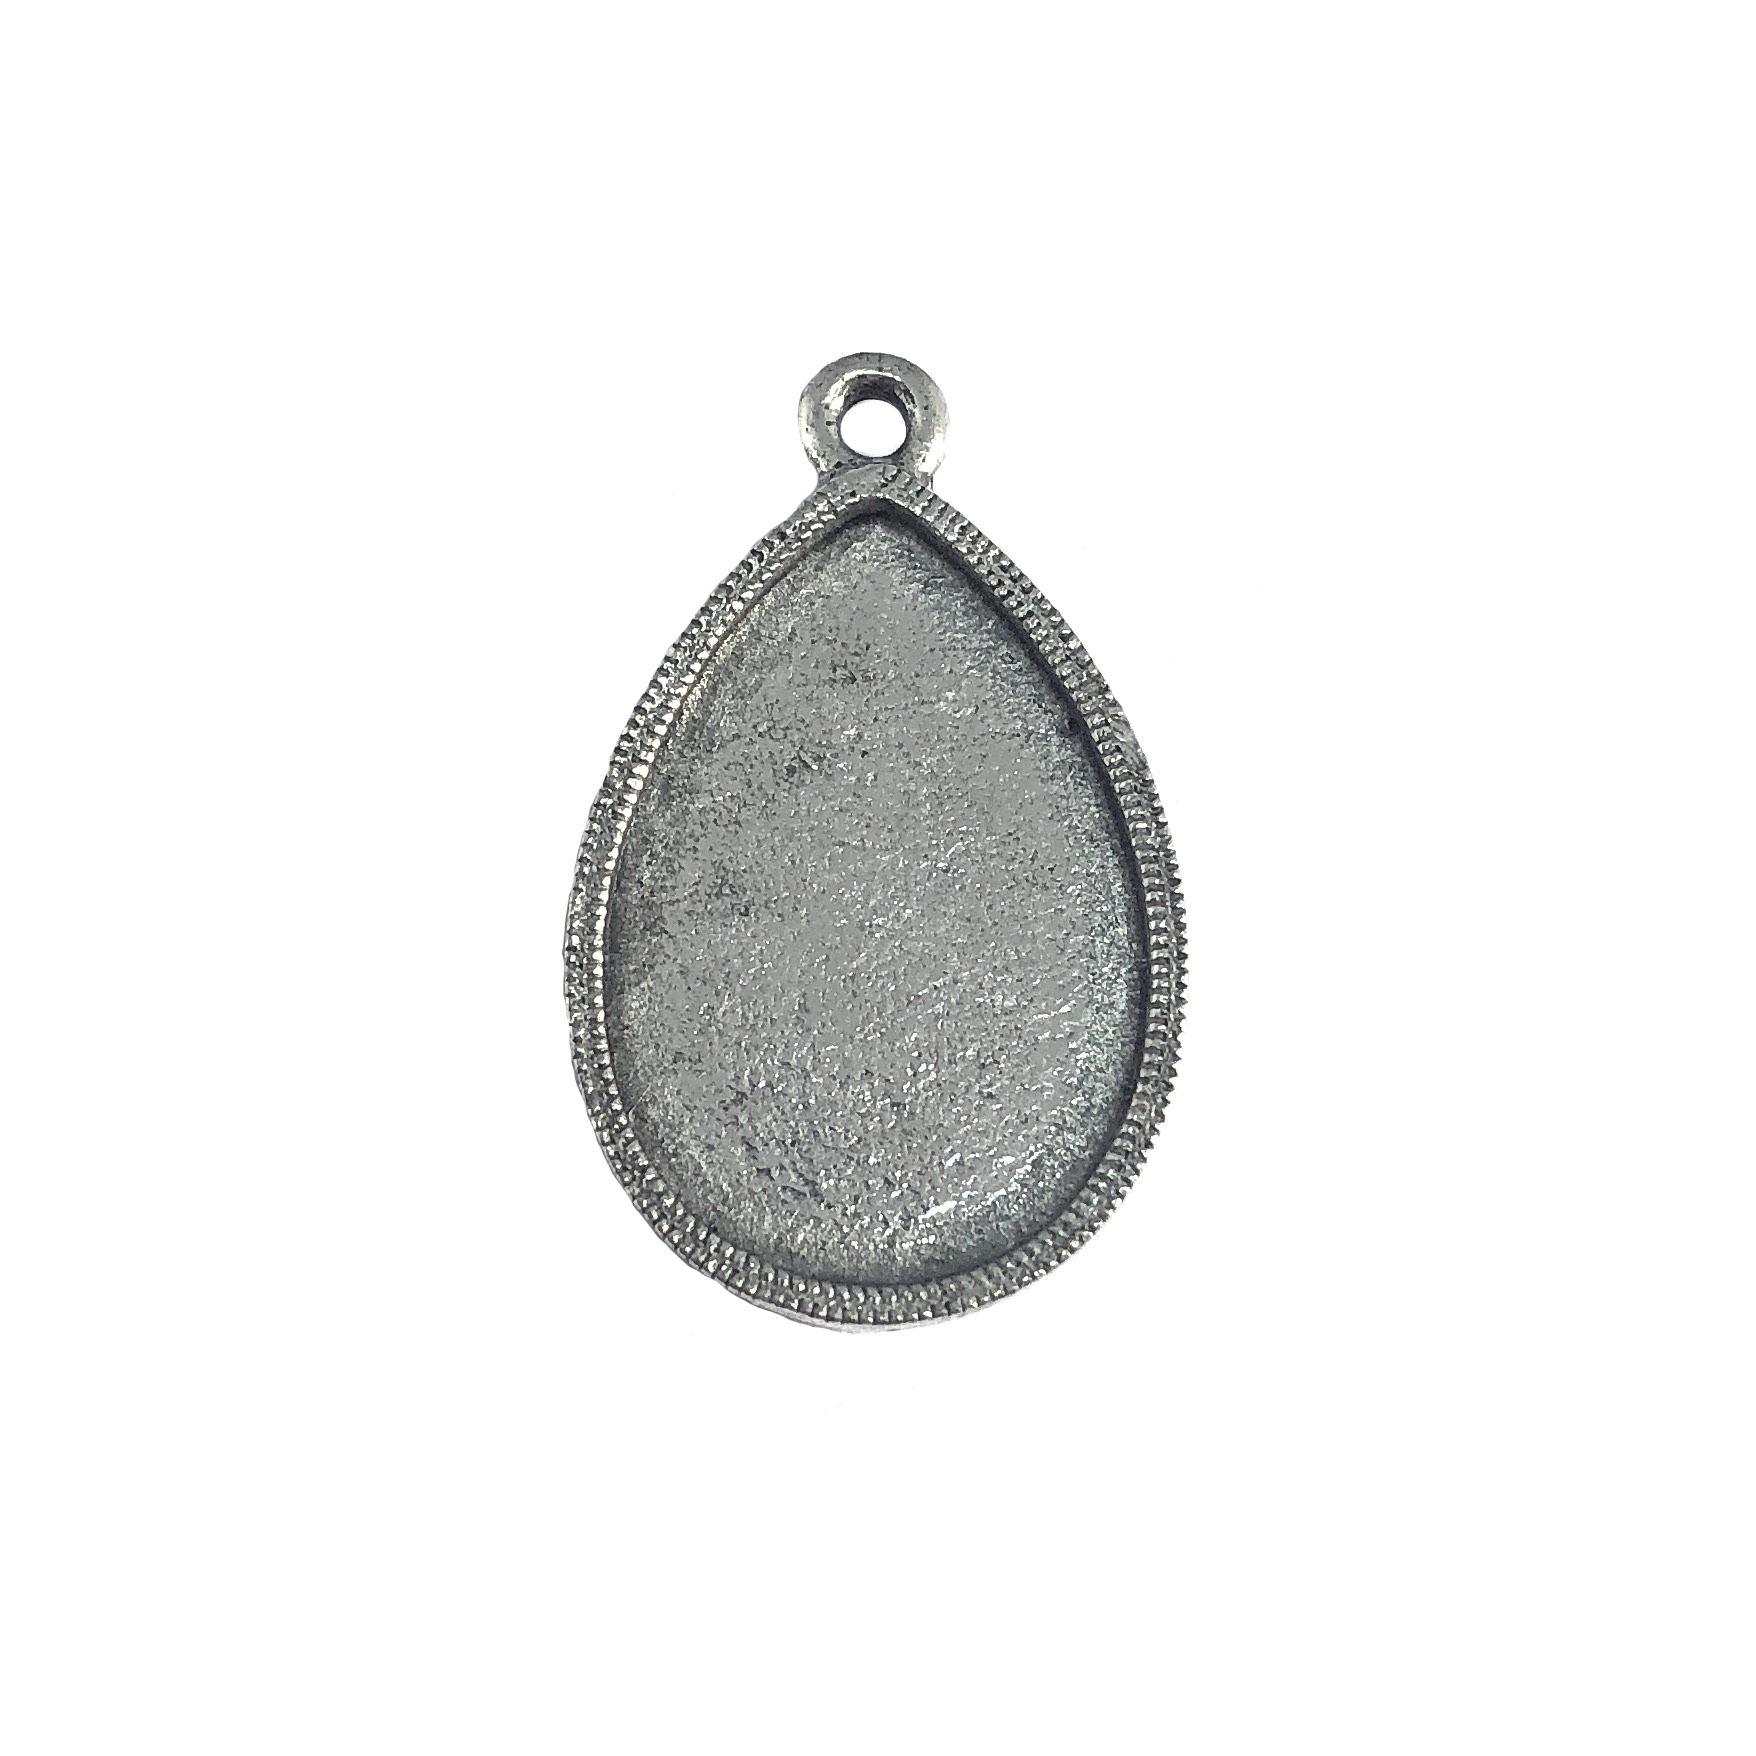 teardrop bezel, pendant, vintage pewter castings, B'sue by 1928, mount, bezel, teardrop, pendant, nickel free, lead free pewter, old silver, us made, designer jewelry, vintage jewelry supplies, 1928 Jewelry, B'sue Boutiques, drop, 07405